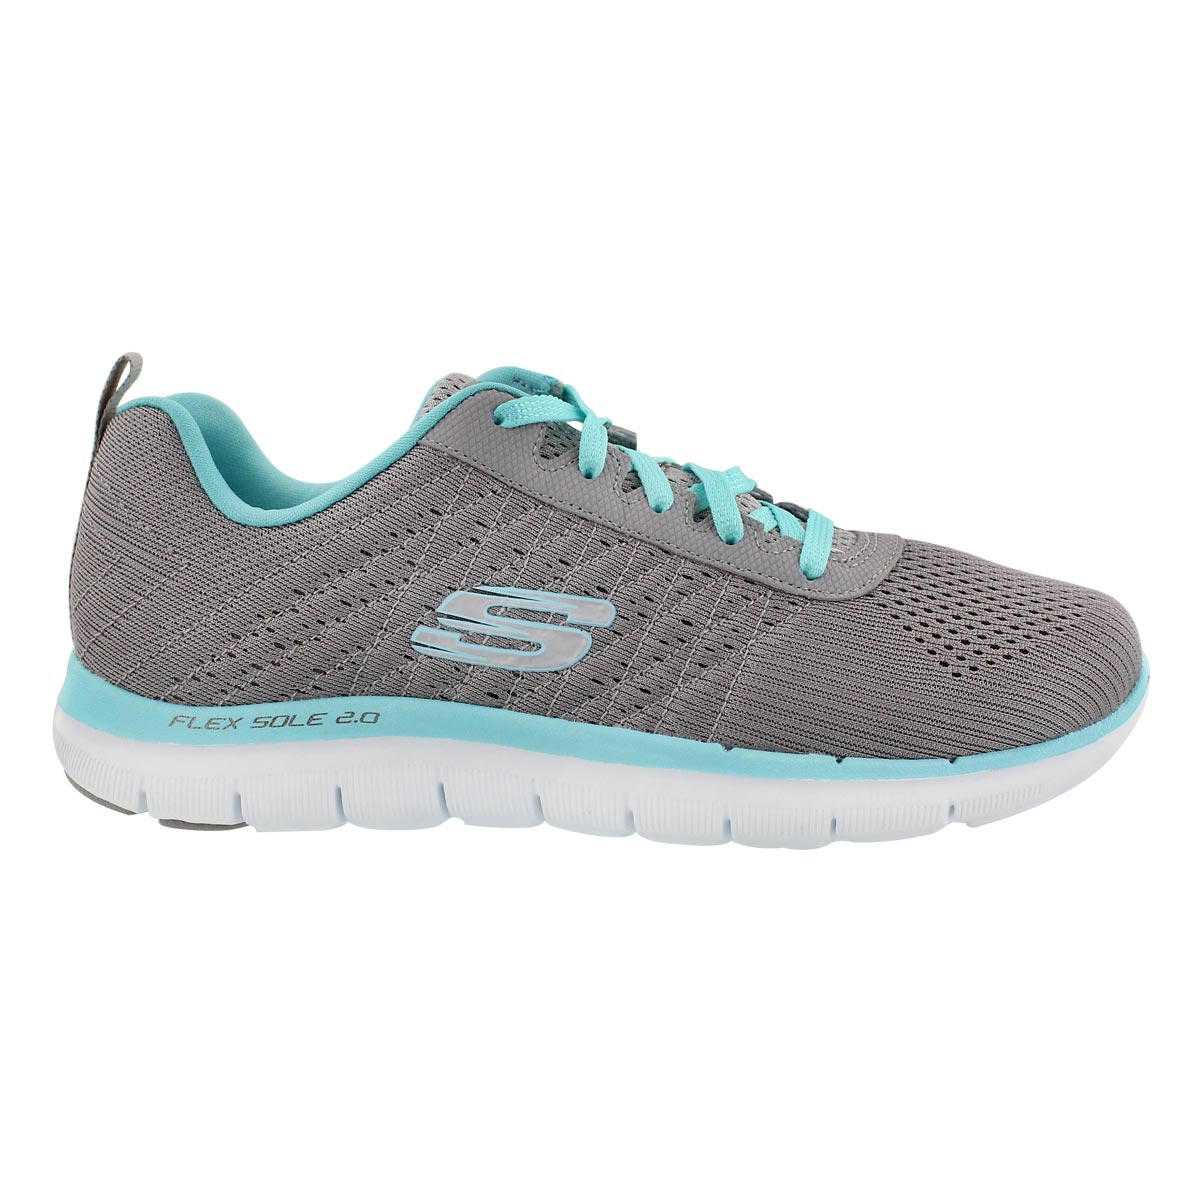 Lds Flex Appeal 2.0 gry/lt blu runner